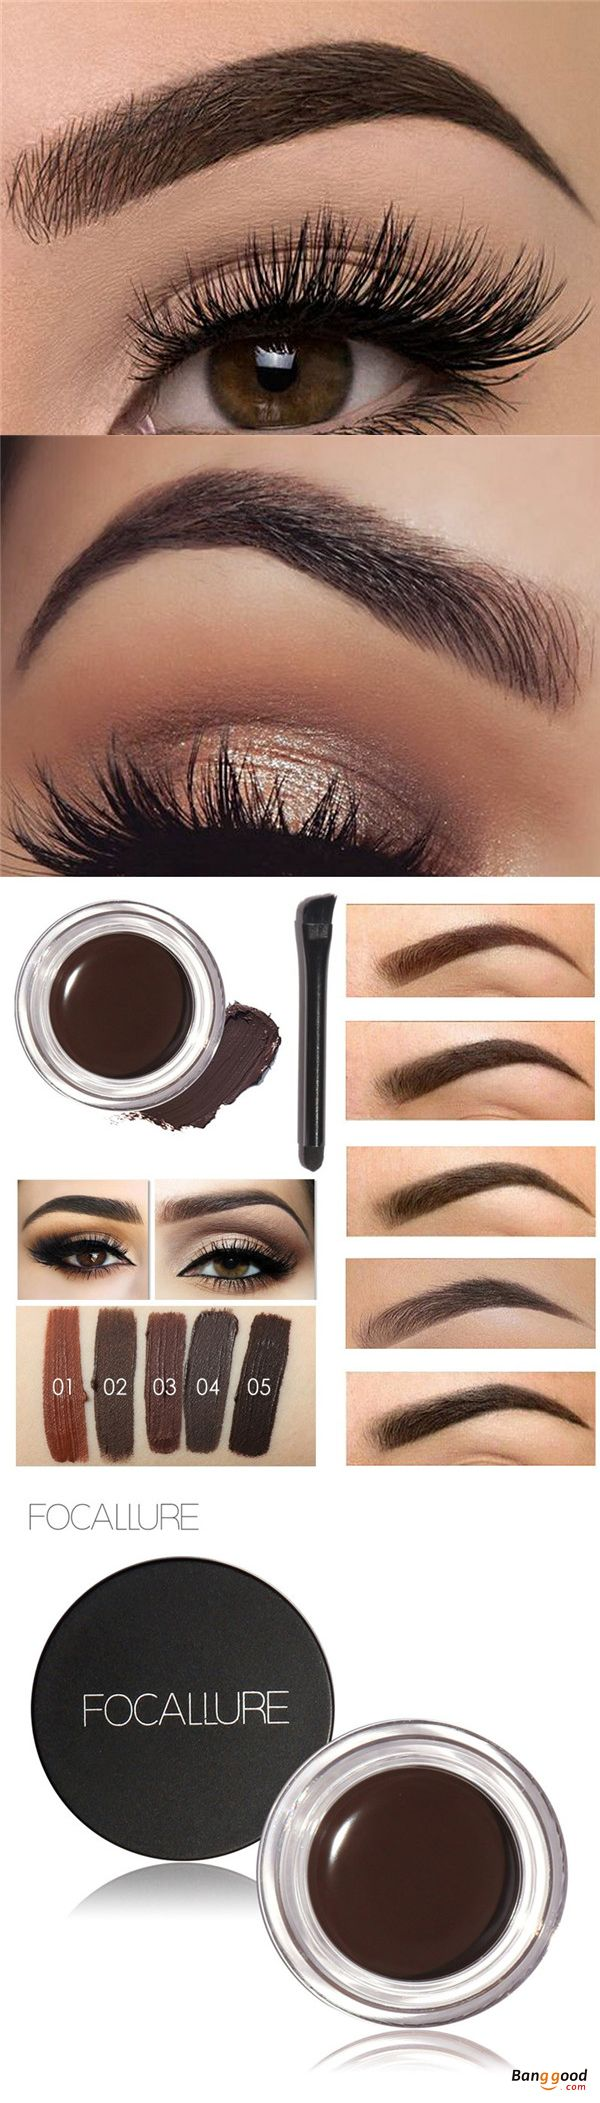 US$6.59 + Free shipping. The way to have the perfect eyebrows and  pretty makeup looks.  FOCALLURE Eyebrow Enhancer. Easy to Wear, Long-lasting, Natural.  LOVE IT!